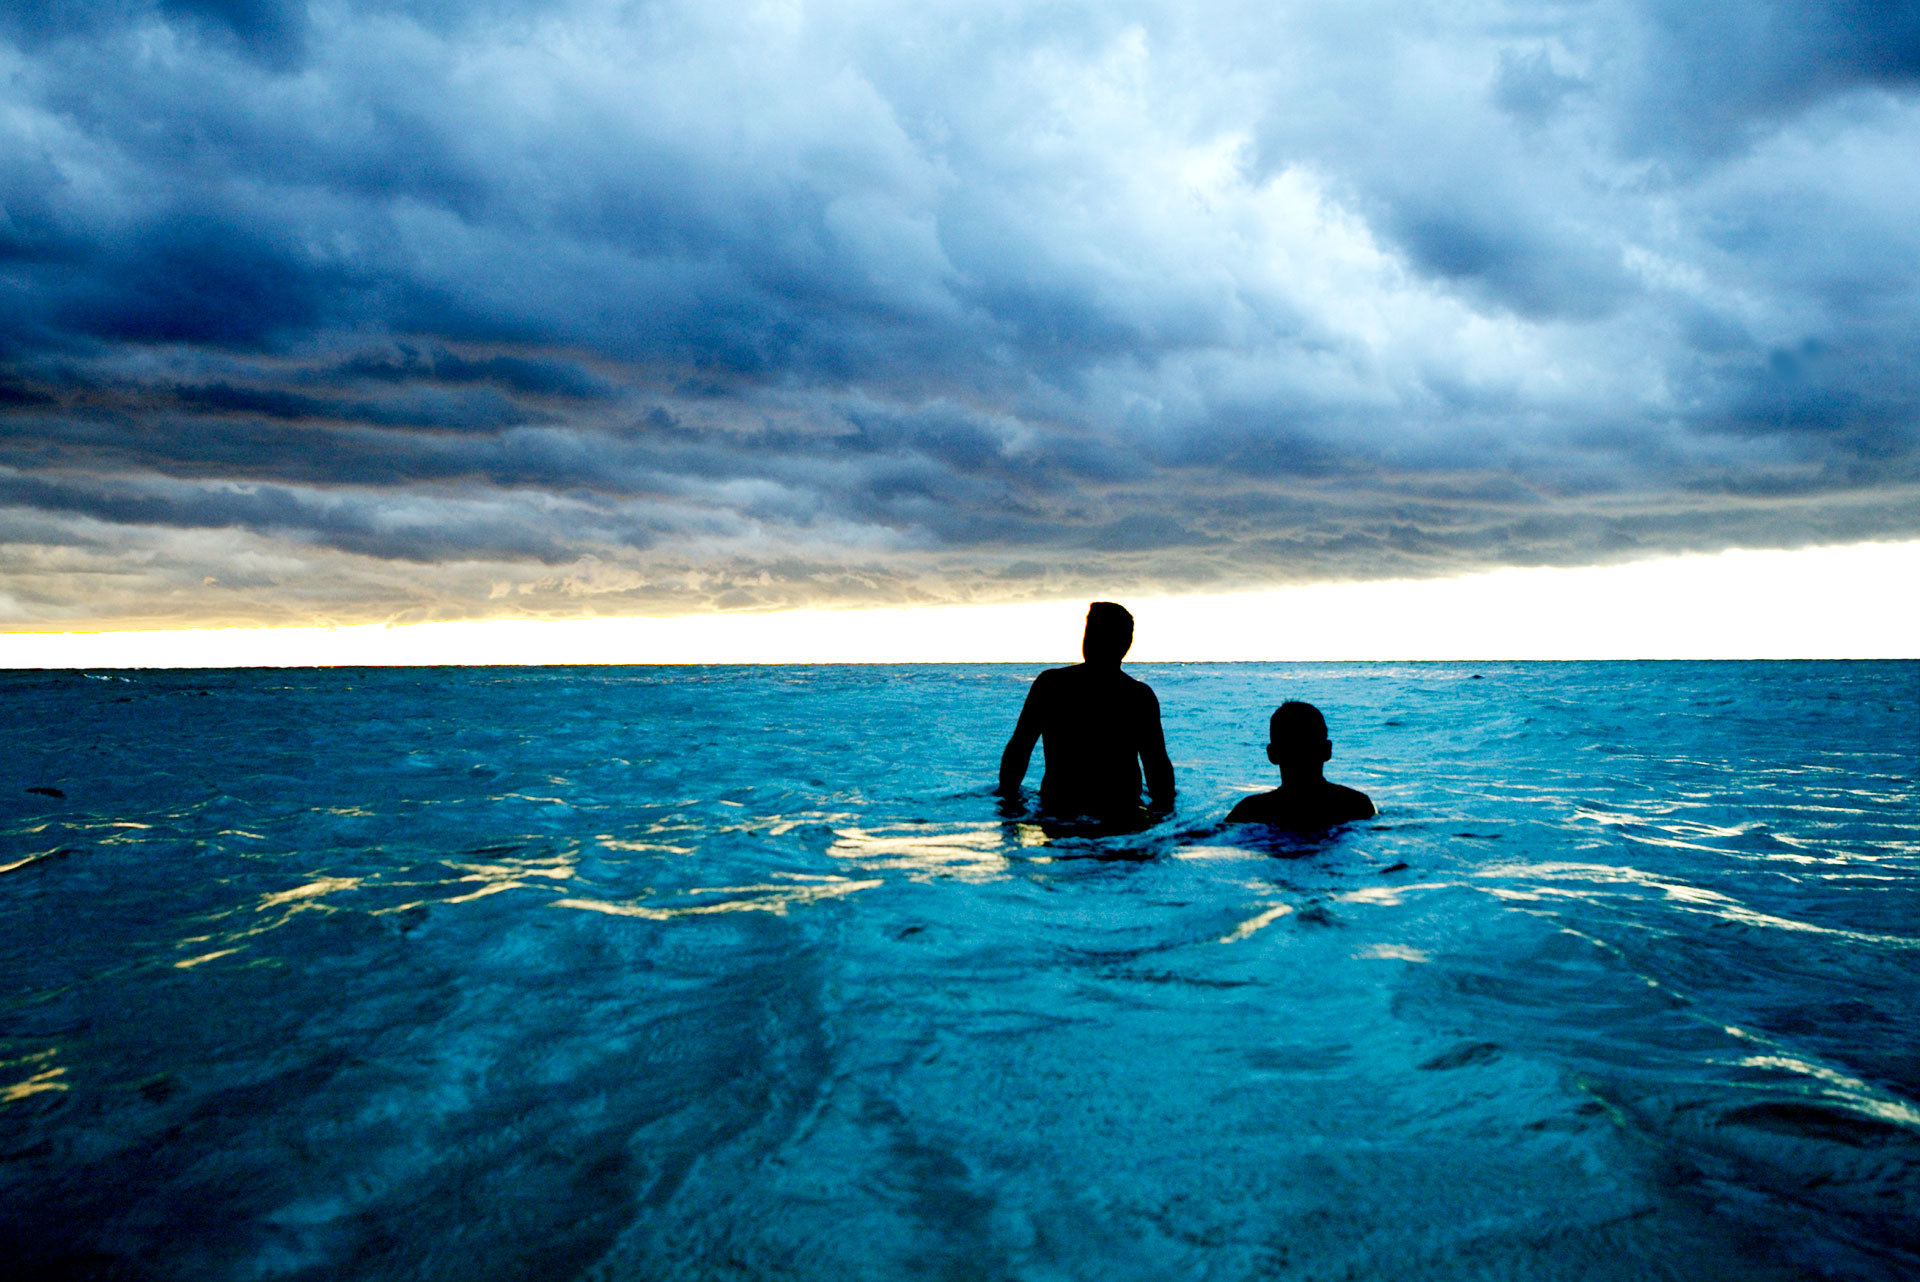 Jason Florio photography - color image of two Cuban men wading in a vivid blue sea, silhouetted against a stormy cloudy sky overhead, Cuba